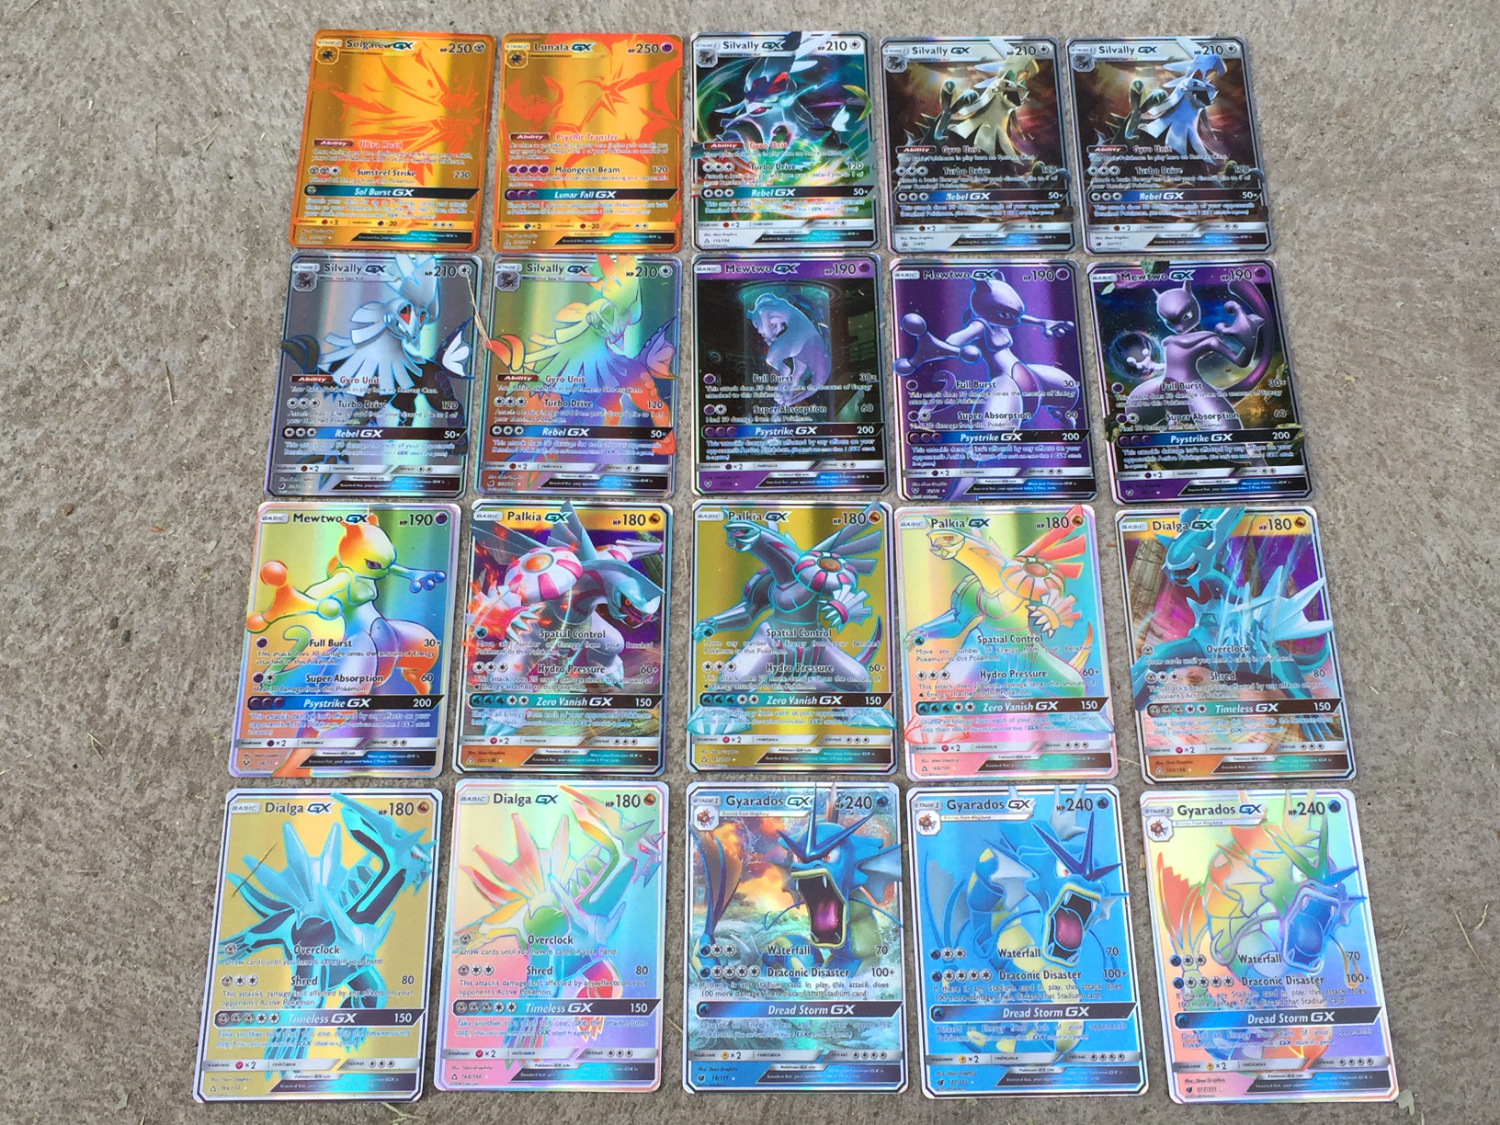 200 Pcs GX MEGA Shining TAKARA TOMY Game Pokemon Cards Battle Carte Trading Cards Game Children Toy